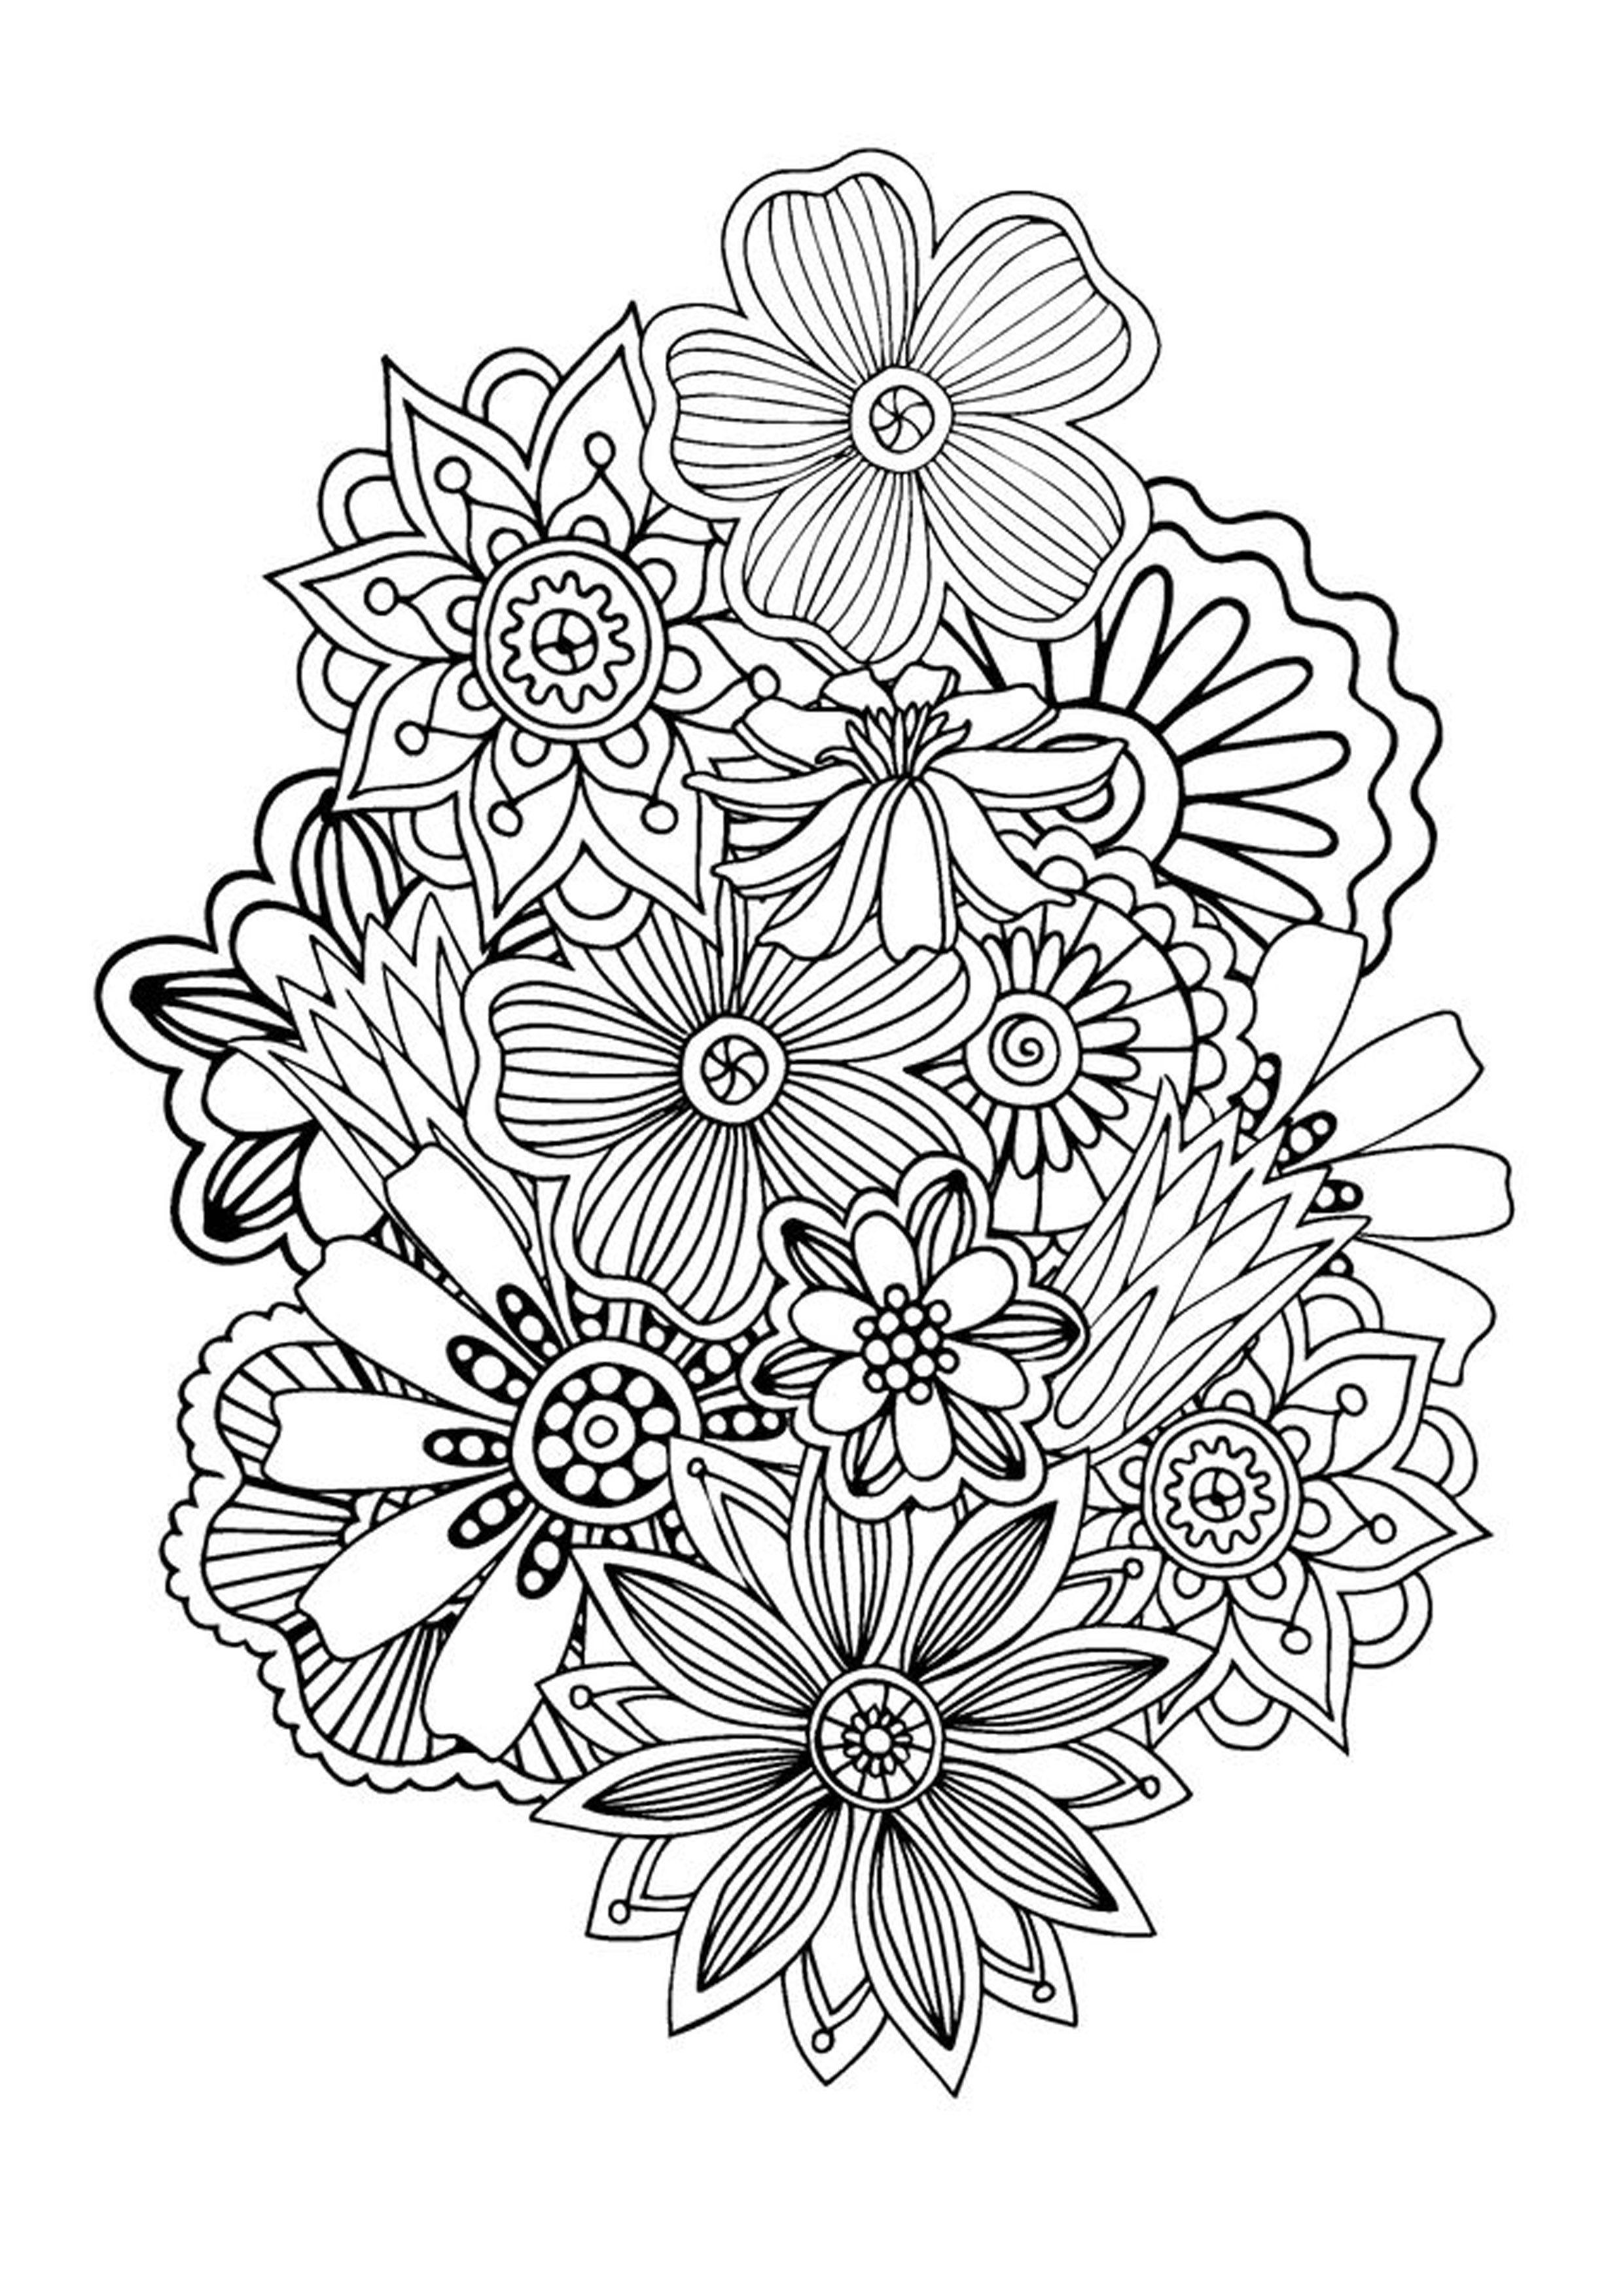 Zen And Anti Stress Coloring Pages For Adults Justcolor Page 6